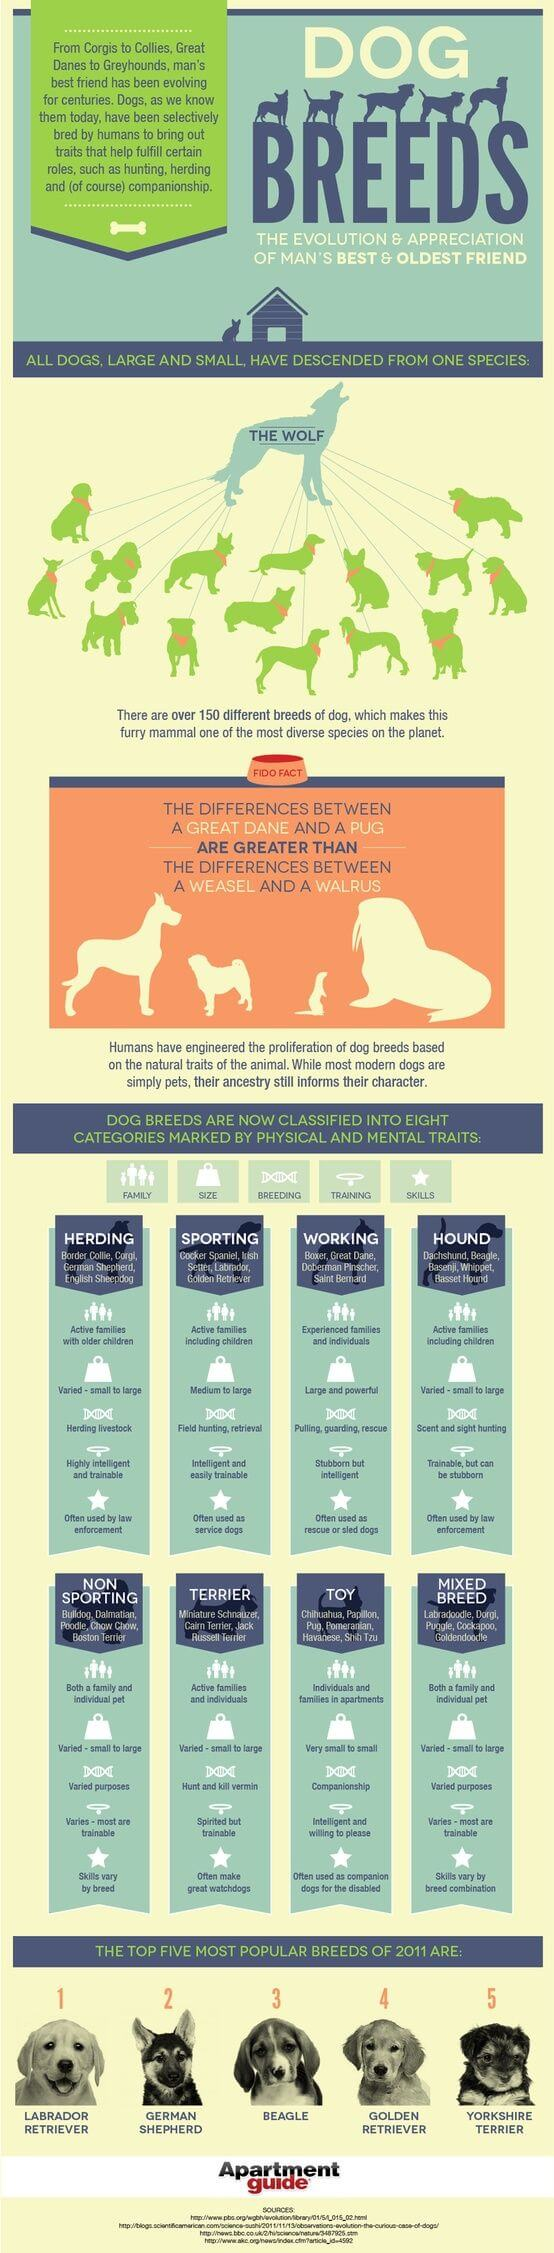 Dog Breeds & Origins